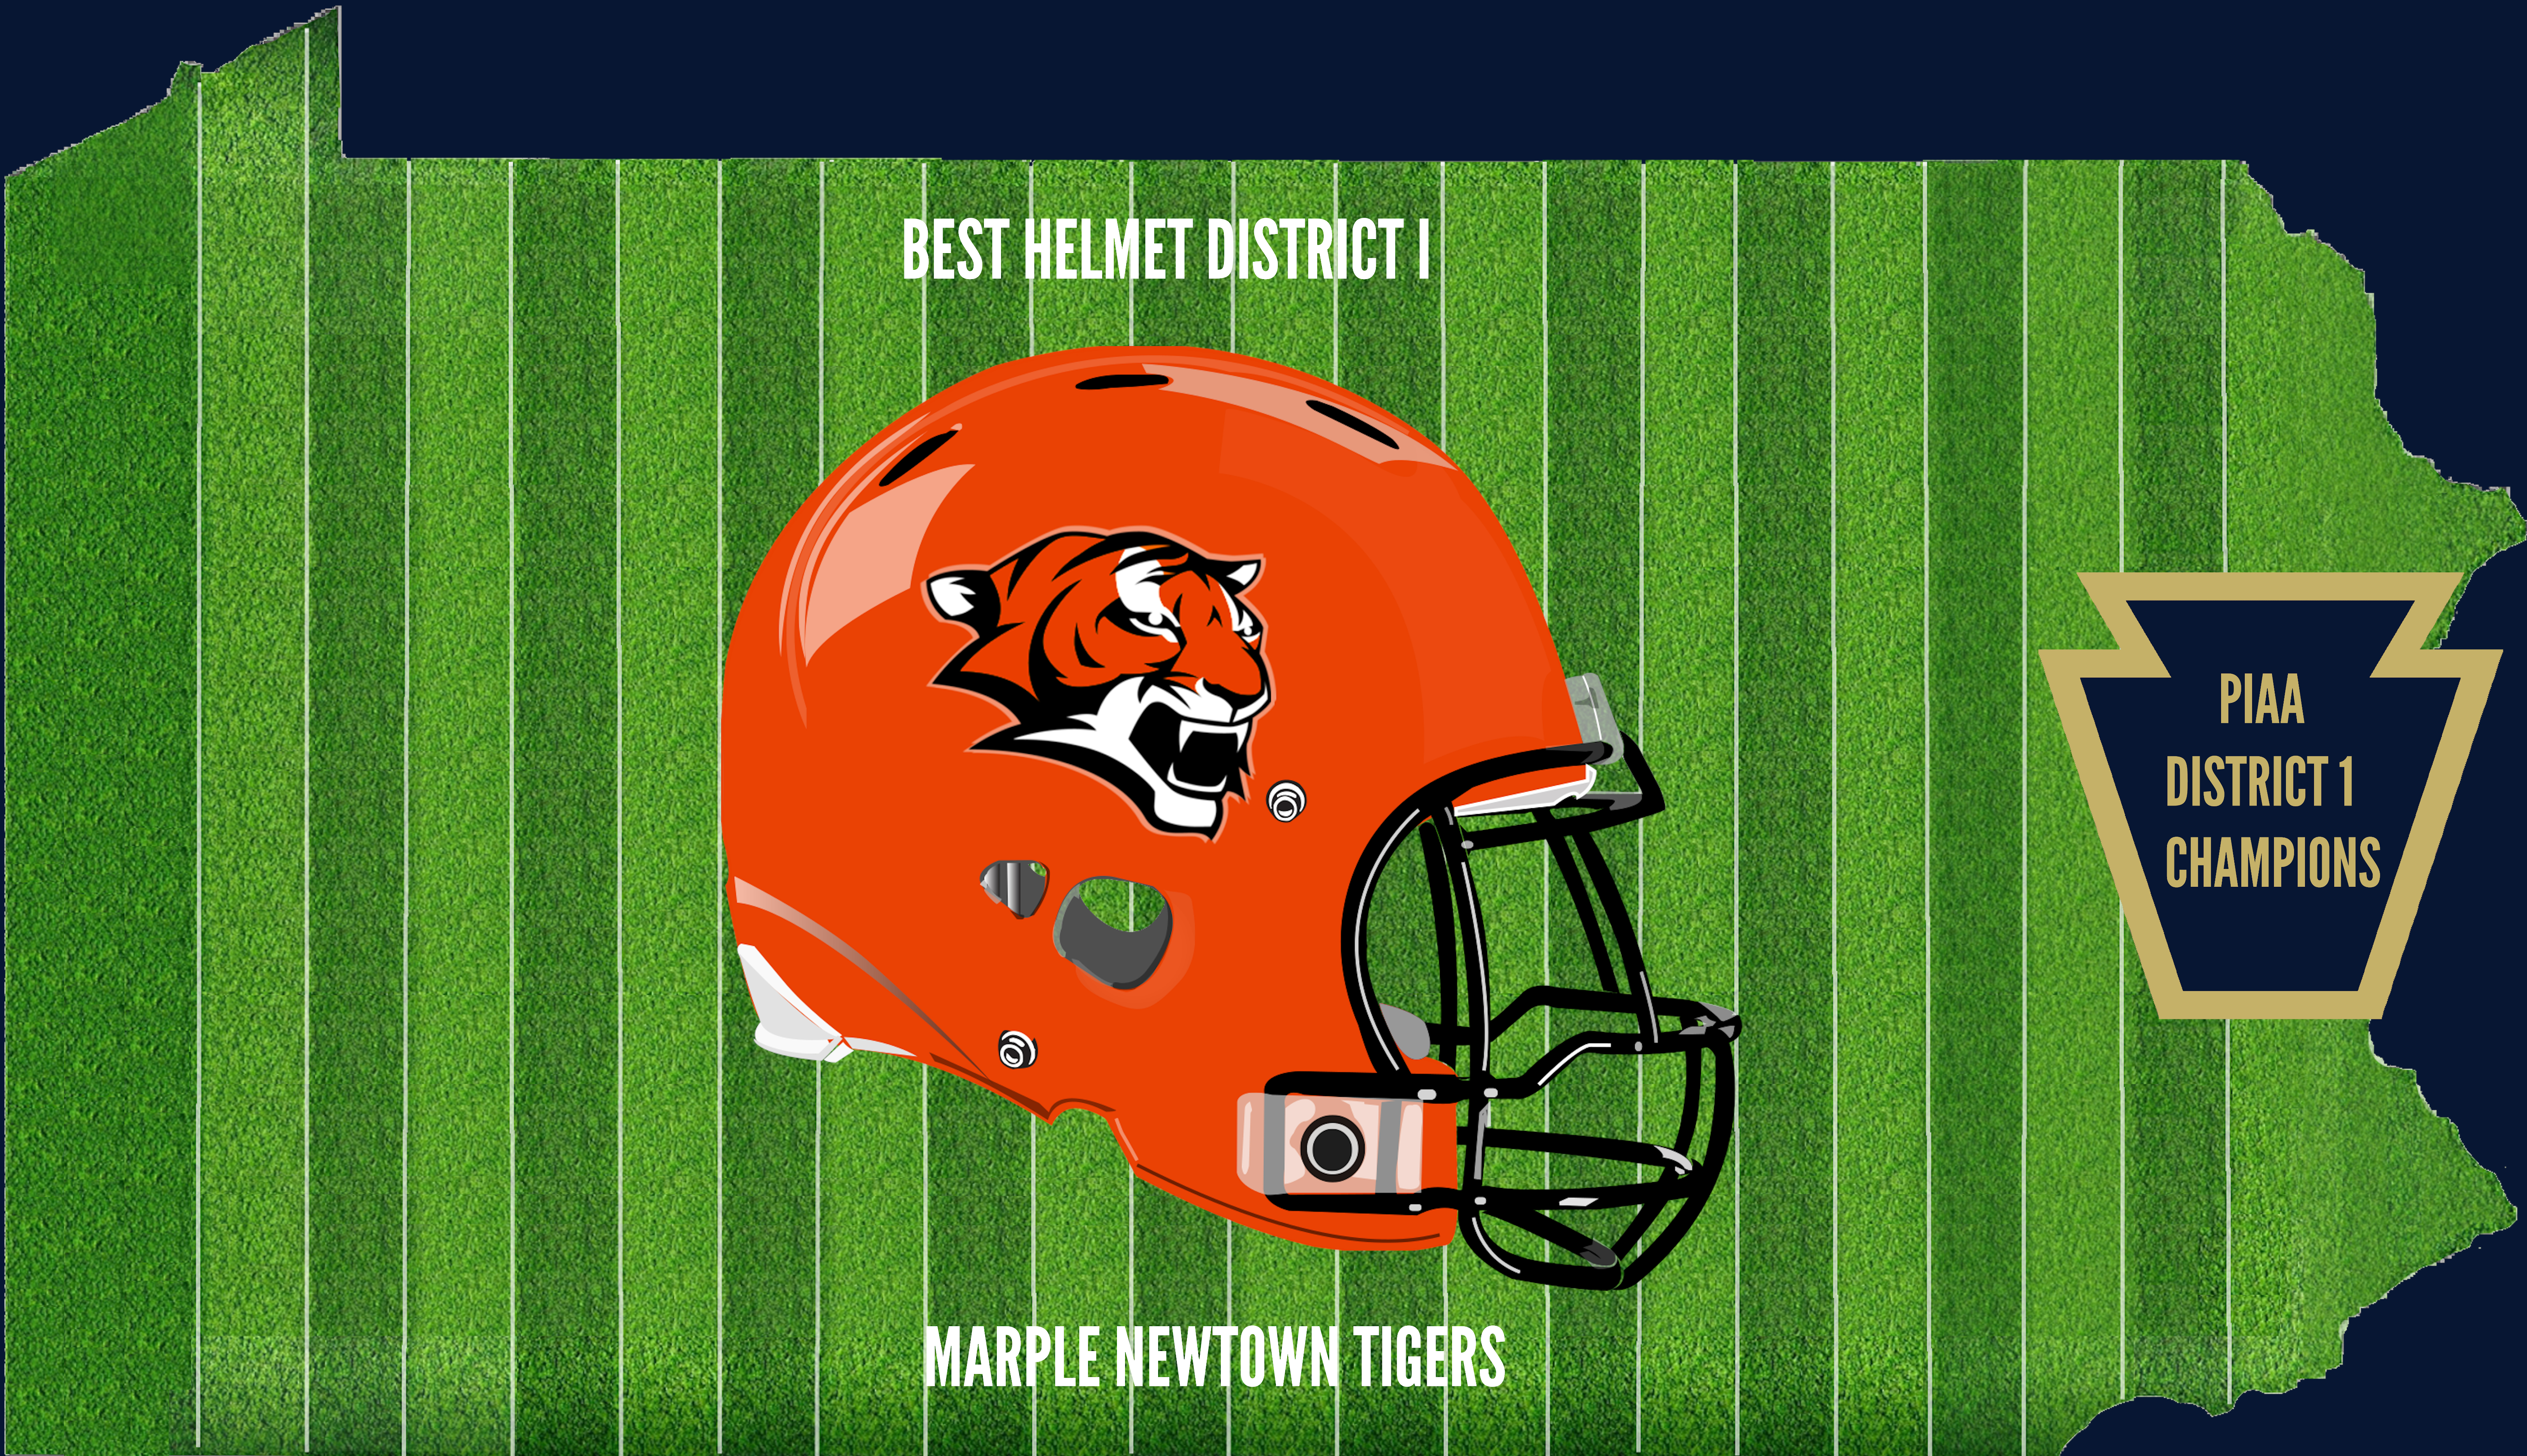 District 1 Champion Helmet MN